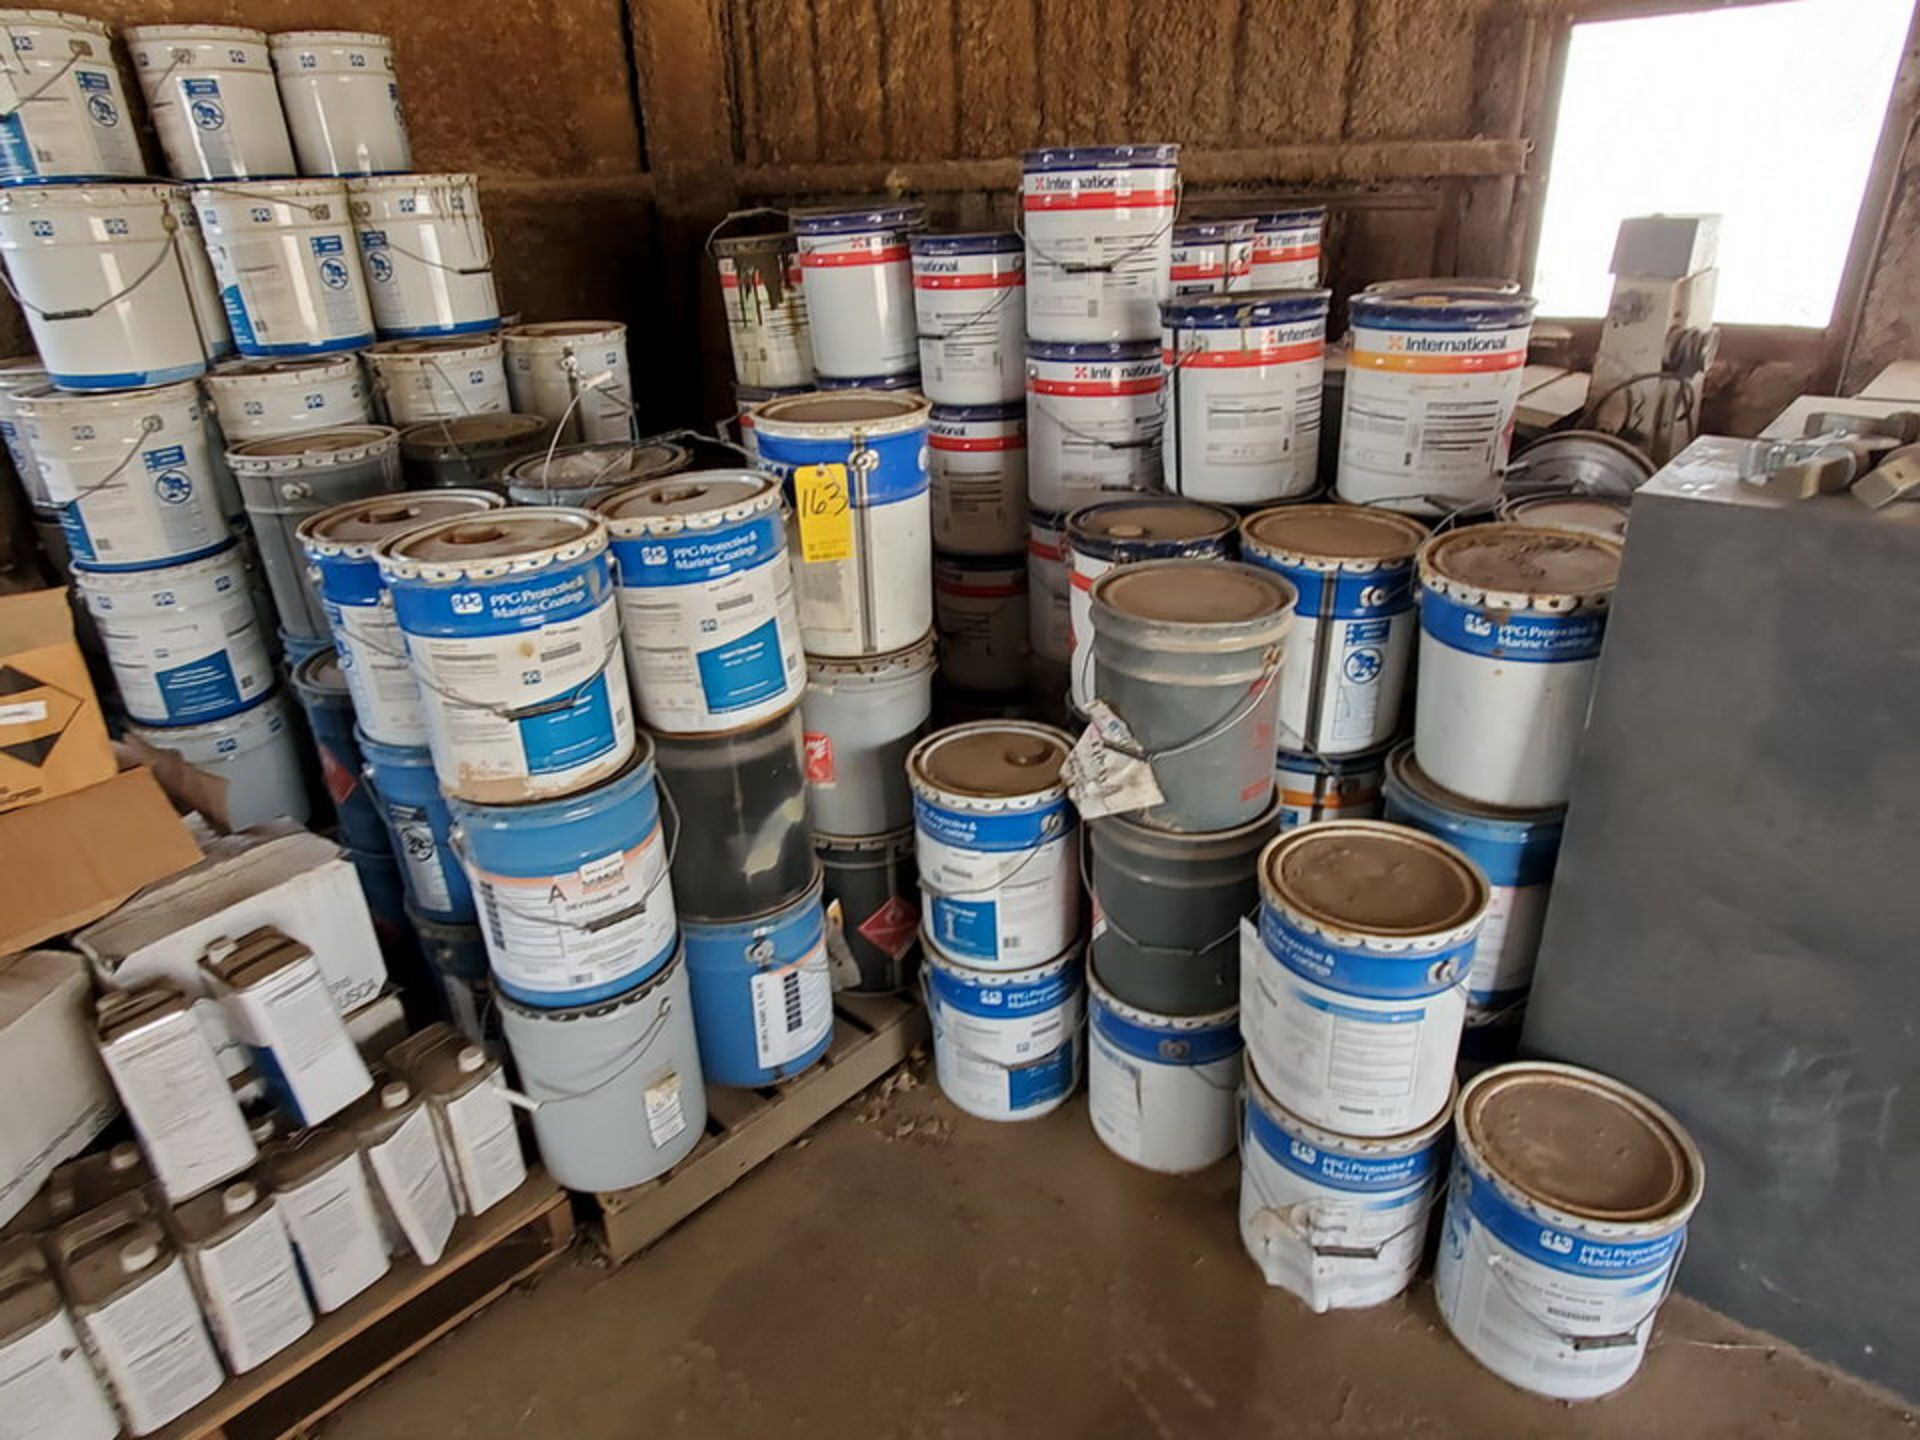 Assorted Paints & Marine Coatings Mfg's: PPG, Intl. & Other - Image 10 of 10